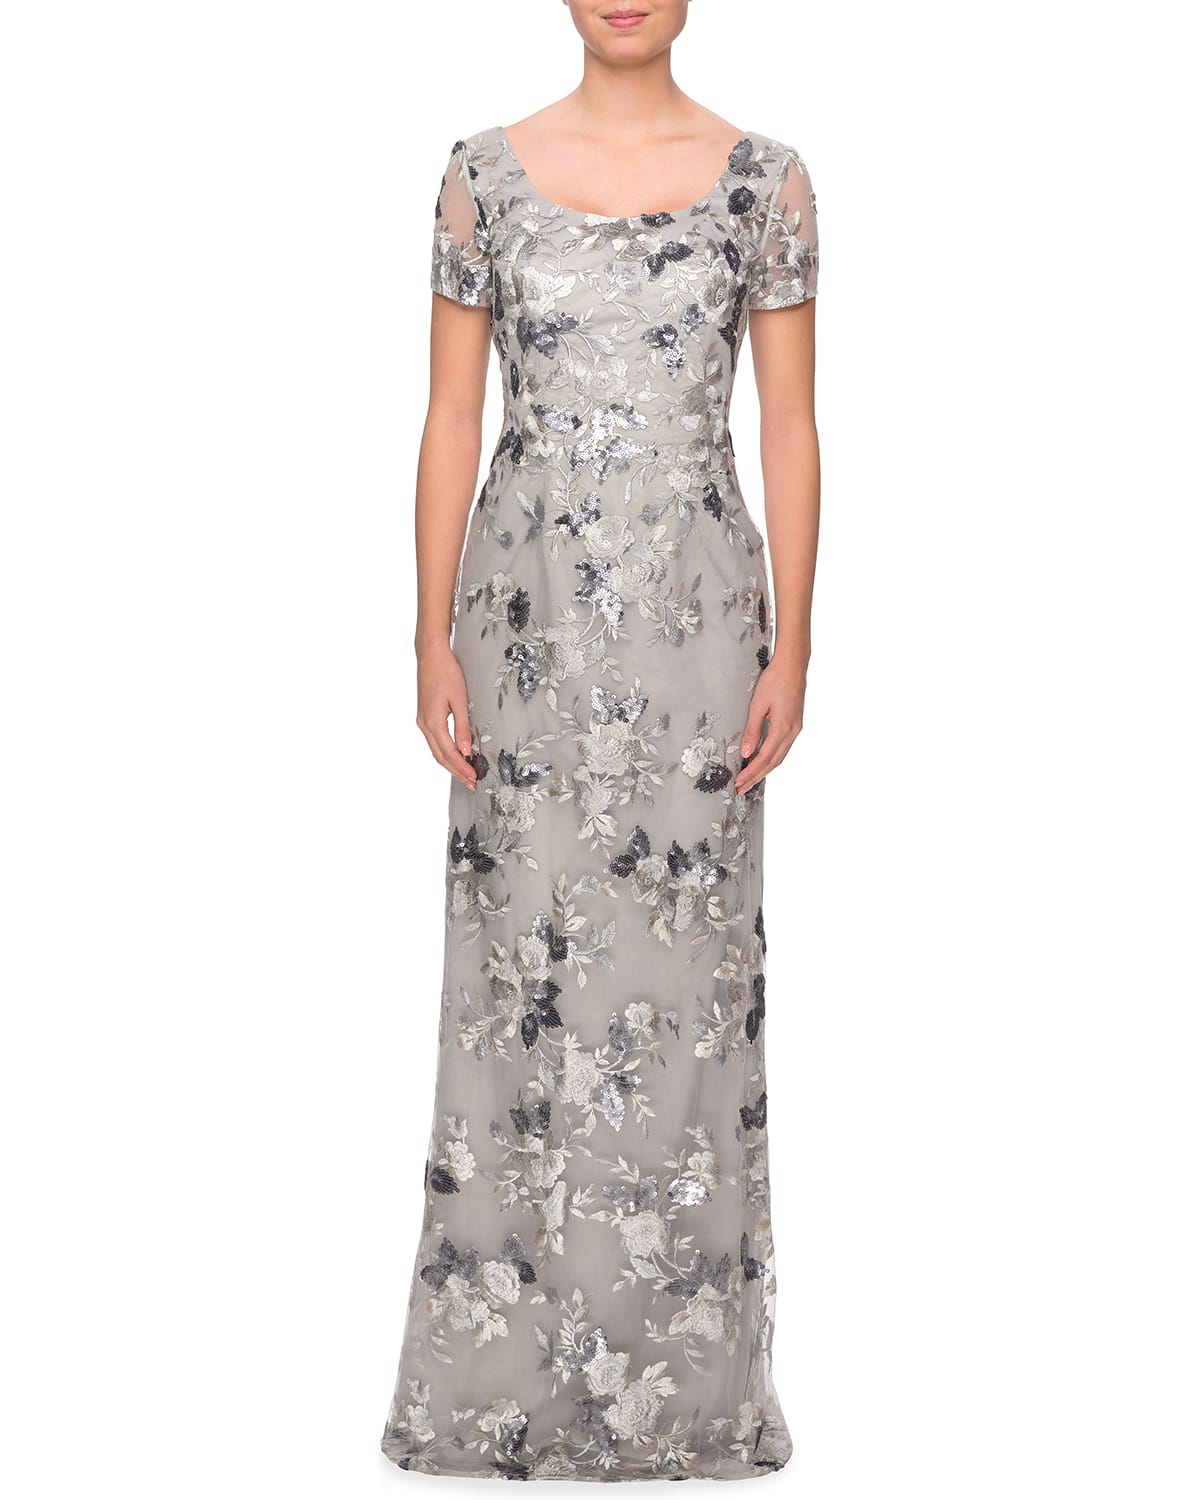 Scoop-Neck Embellished Floral Lace Gown